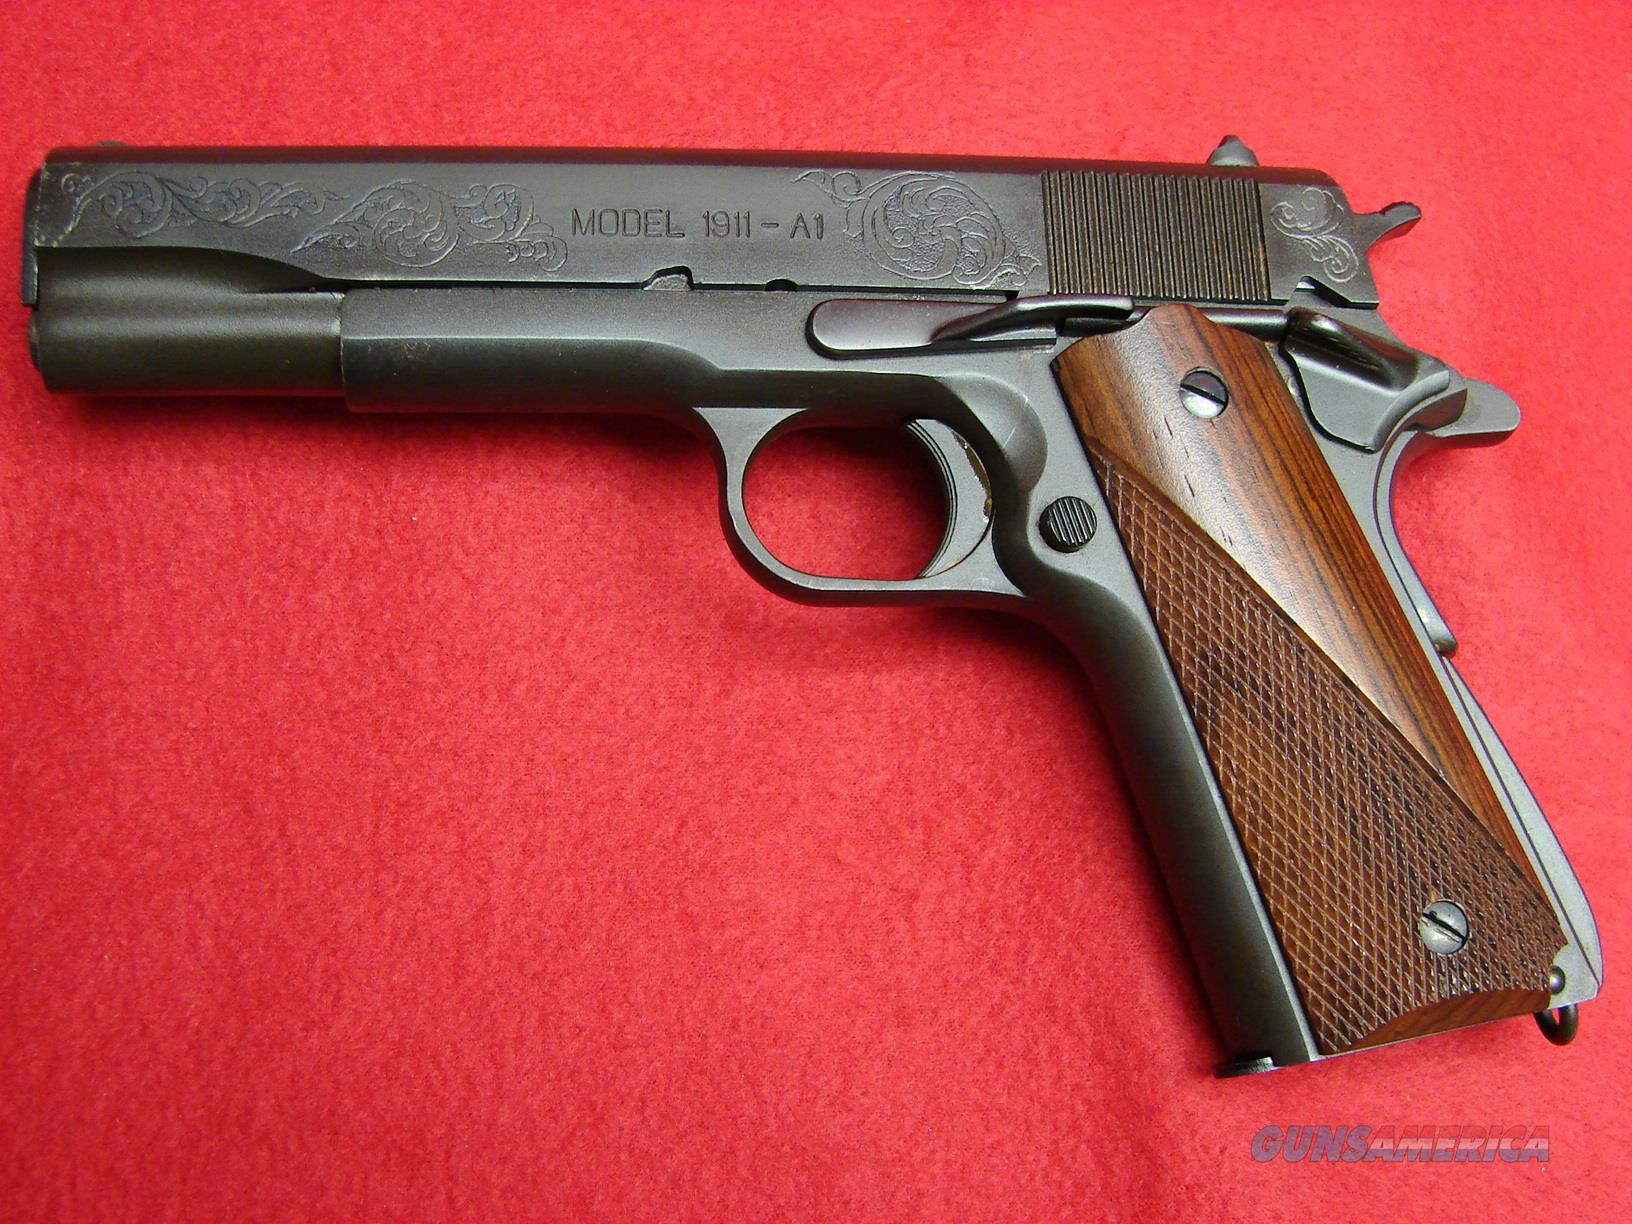 Springfield Armory Model 1911 - A1 - 45acp with Factory Engraved Slide - Used  Guns > Pistols > Springfield Armory Pistols > 1911 Type